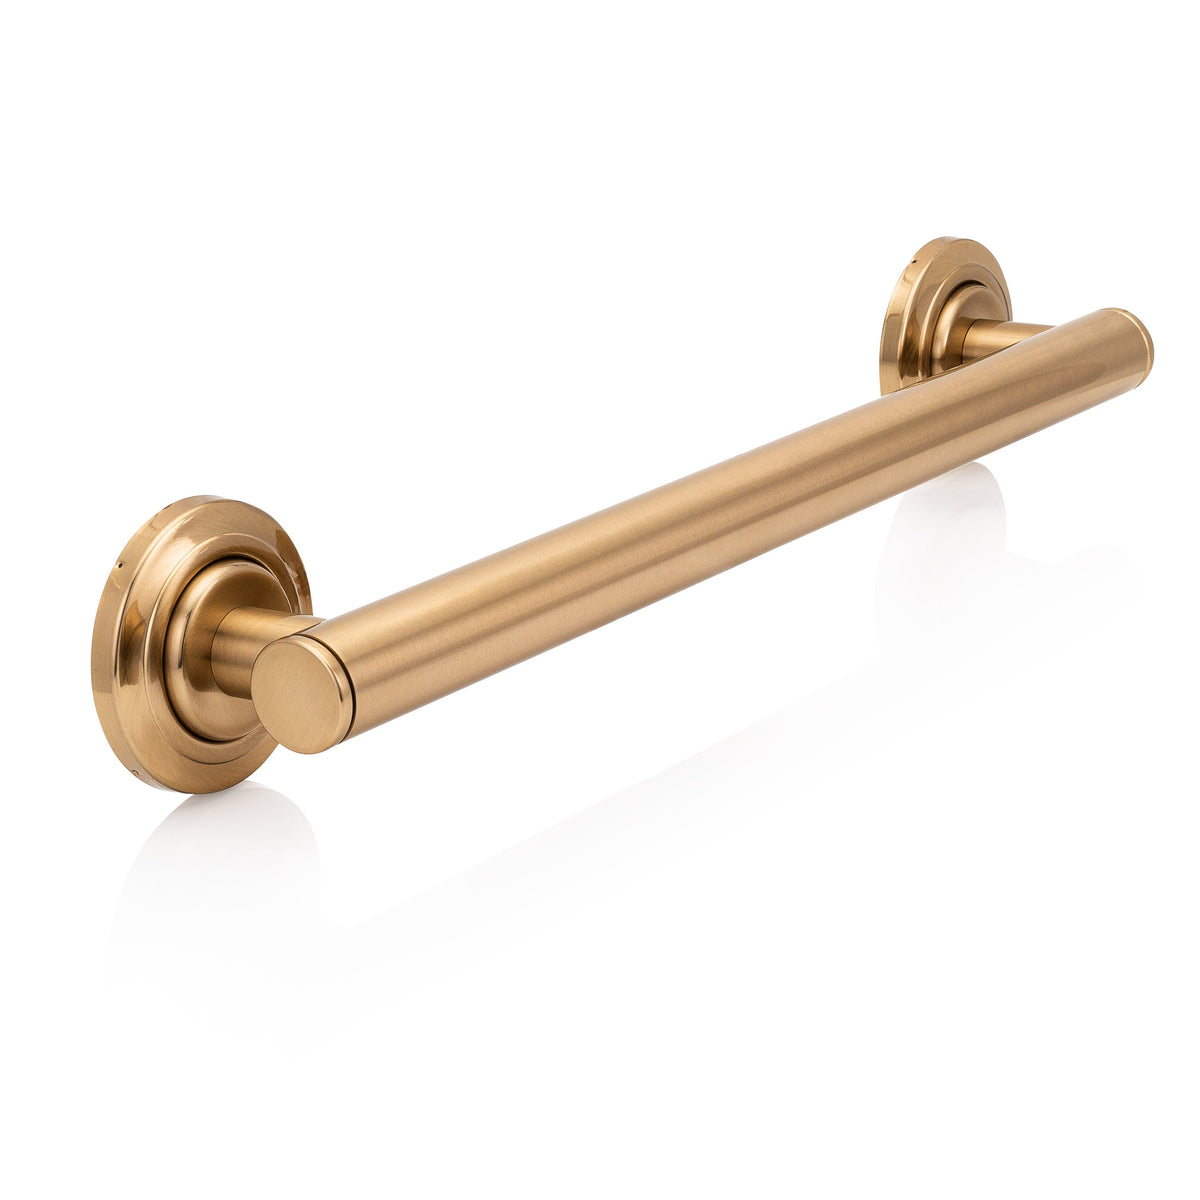 Mr. Grab Bar  Brushed Gold Designer Grab Bar MODERN | Brushed Gold